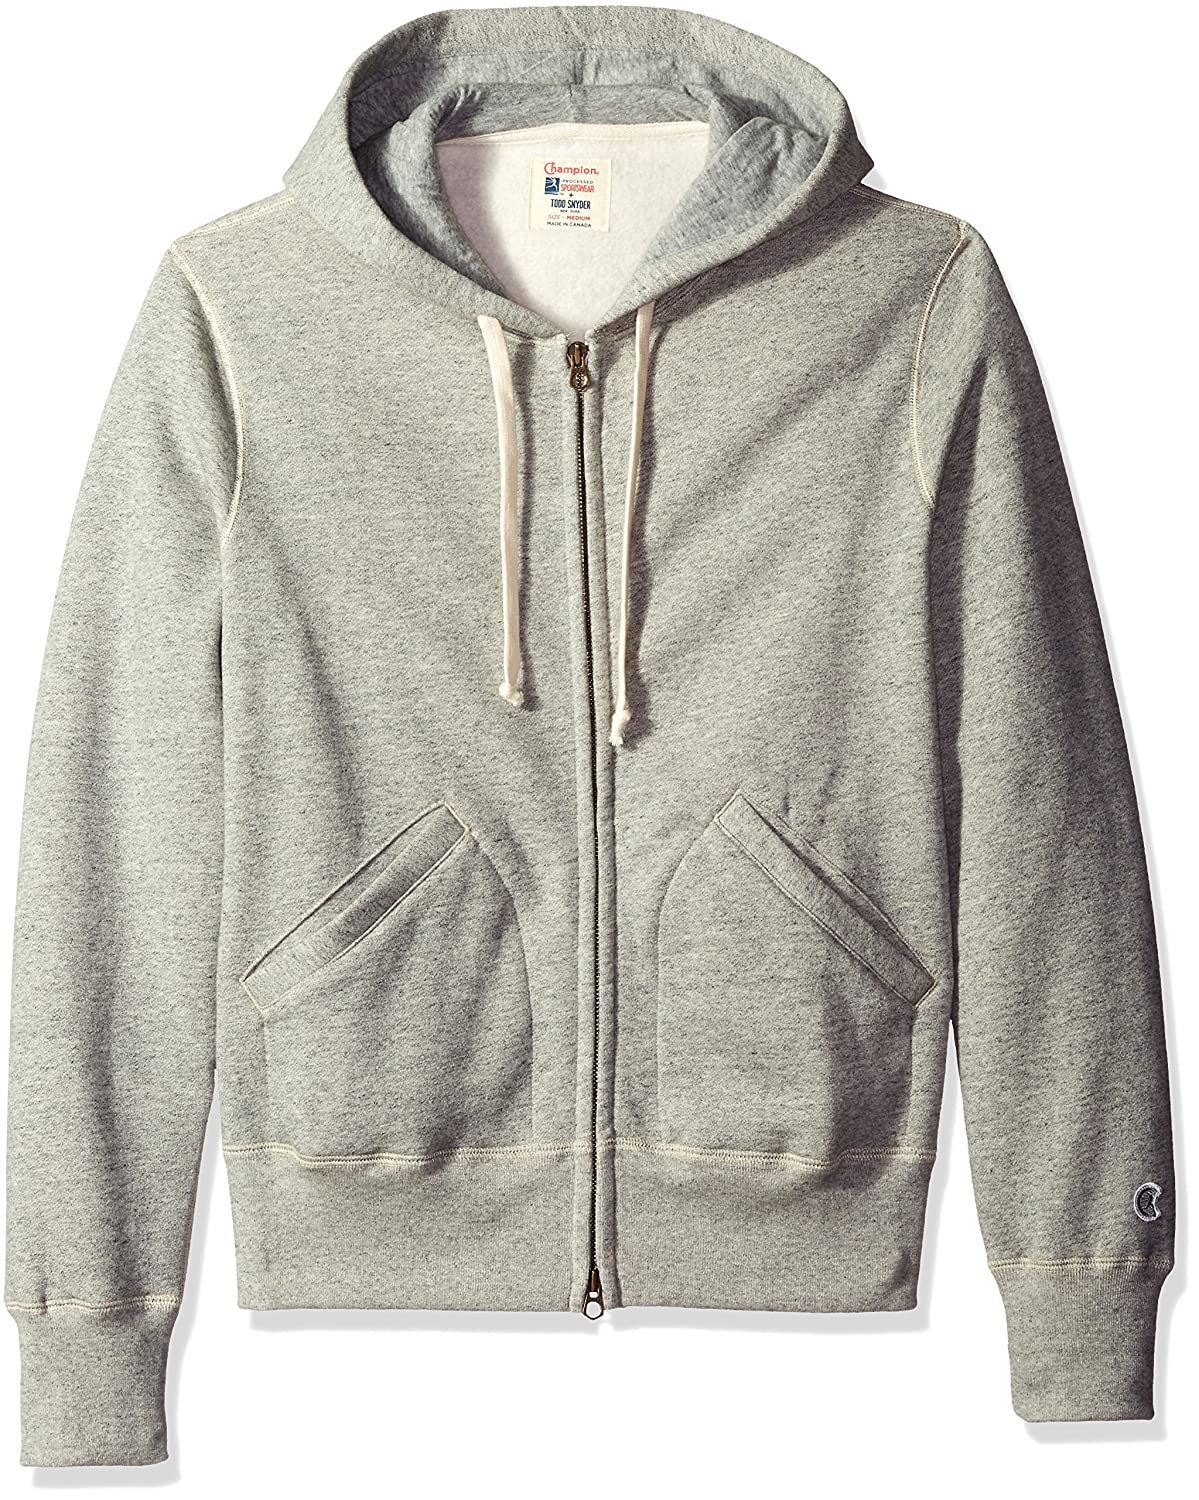 Todd Snyder + Champion Men's Full Zip Hoodie Light Grey Mix Medium KN05107000